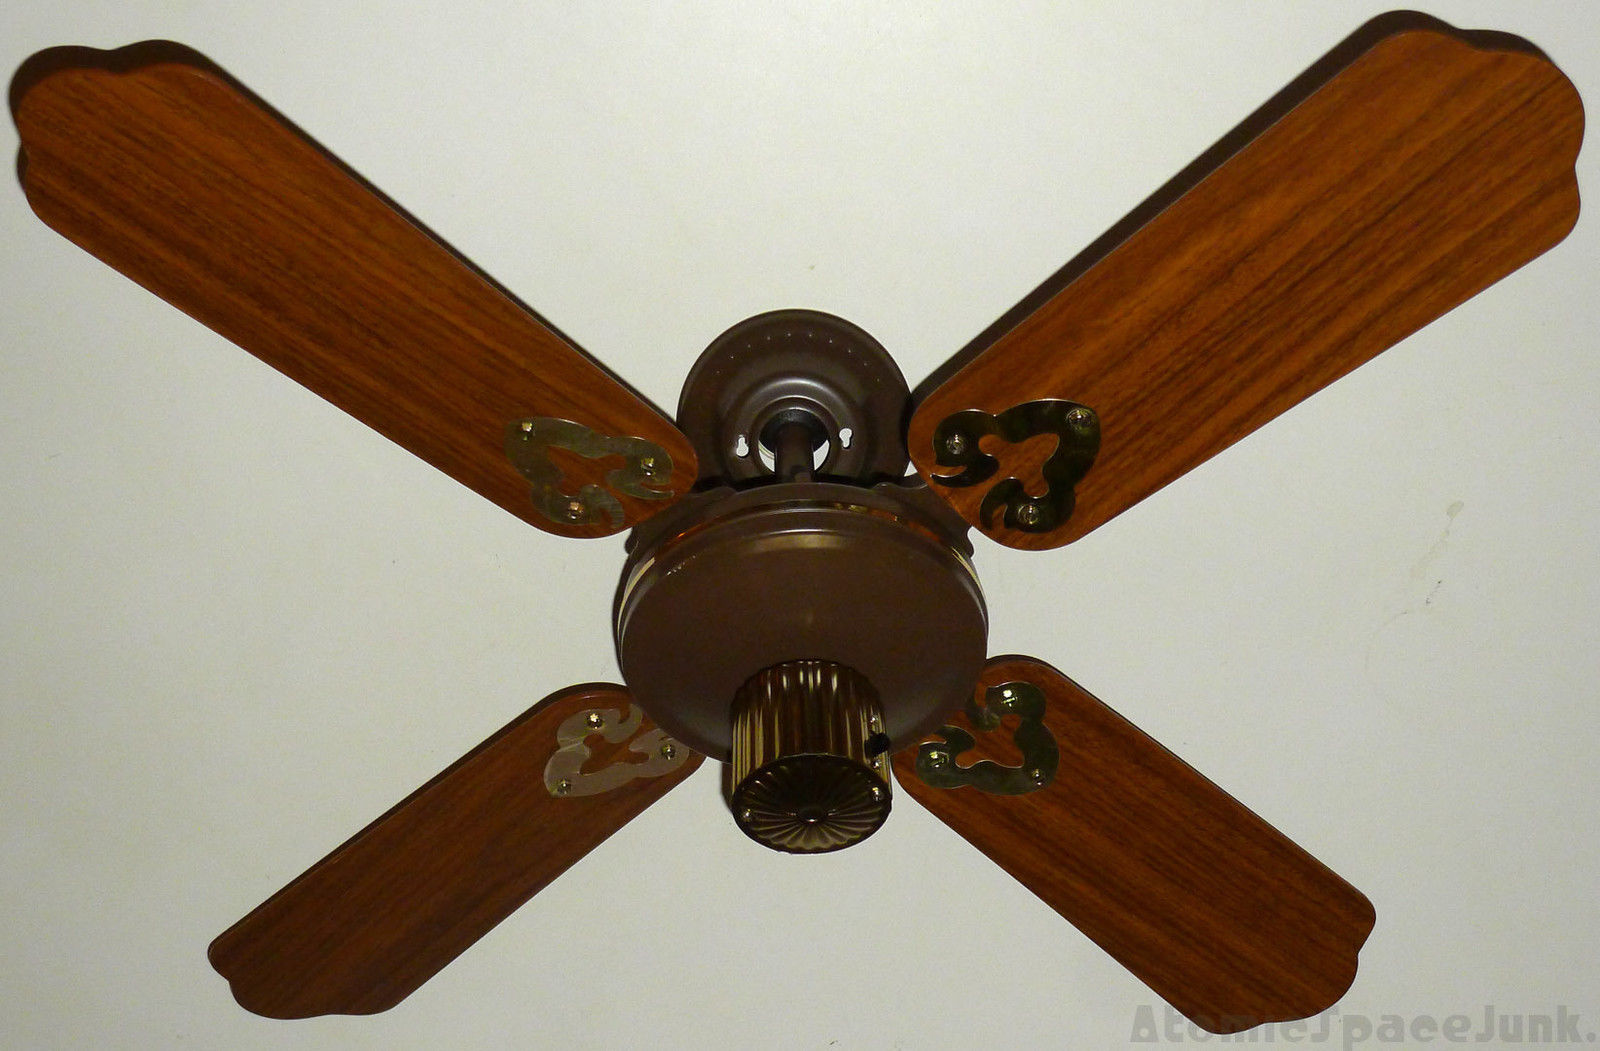 What You Need To Know When Buying The Smc Ceiling Fans